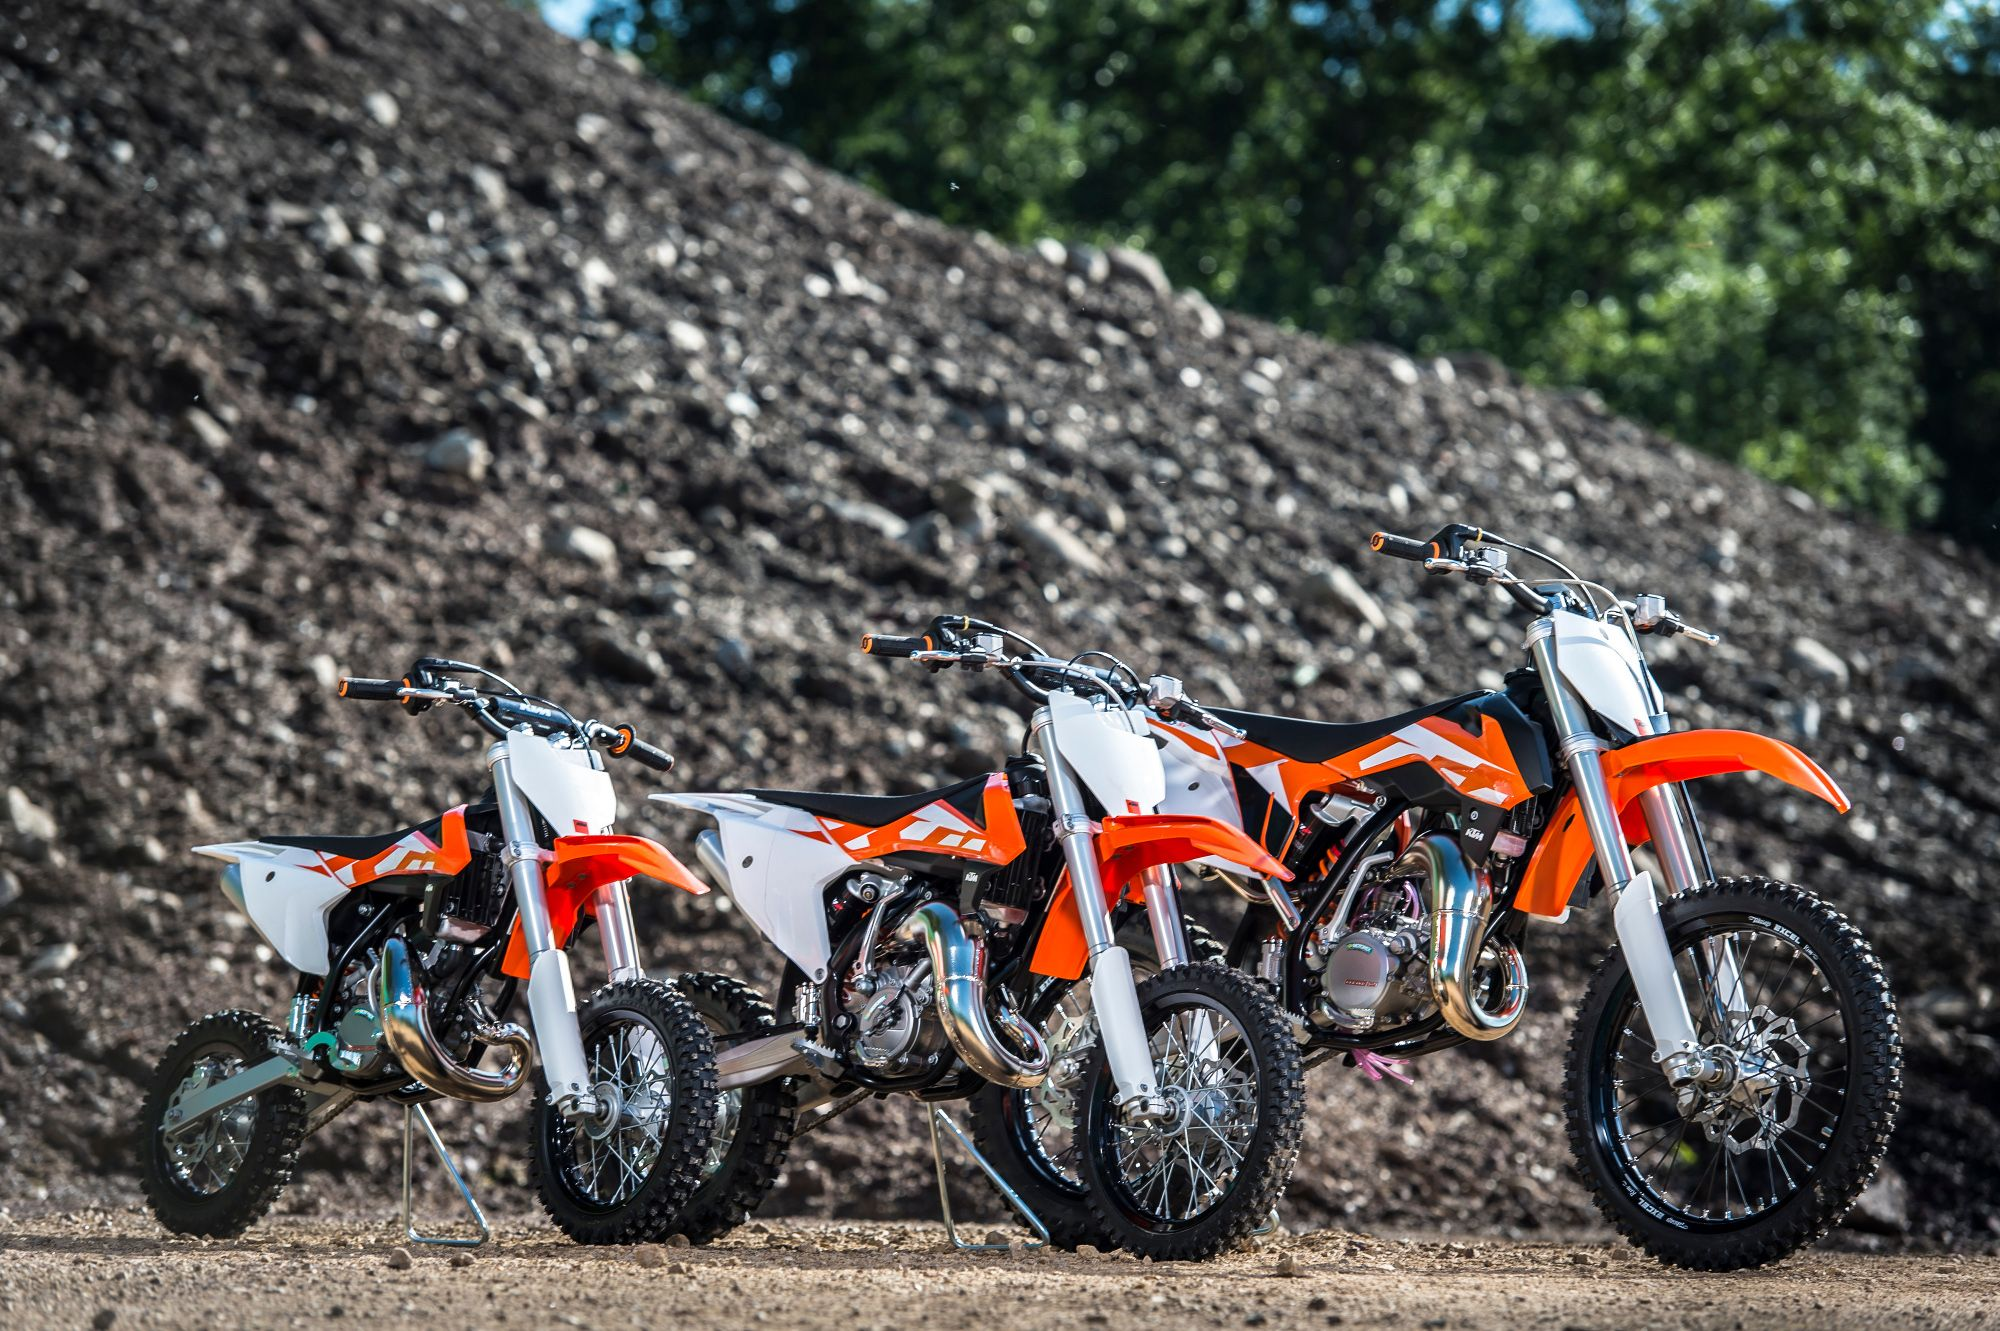 2016 Ktm Sx Range Unveiled Bikecycles Motorcycles 2014 350 F Wiring Diagram The Mini 50 65 And 85